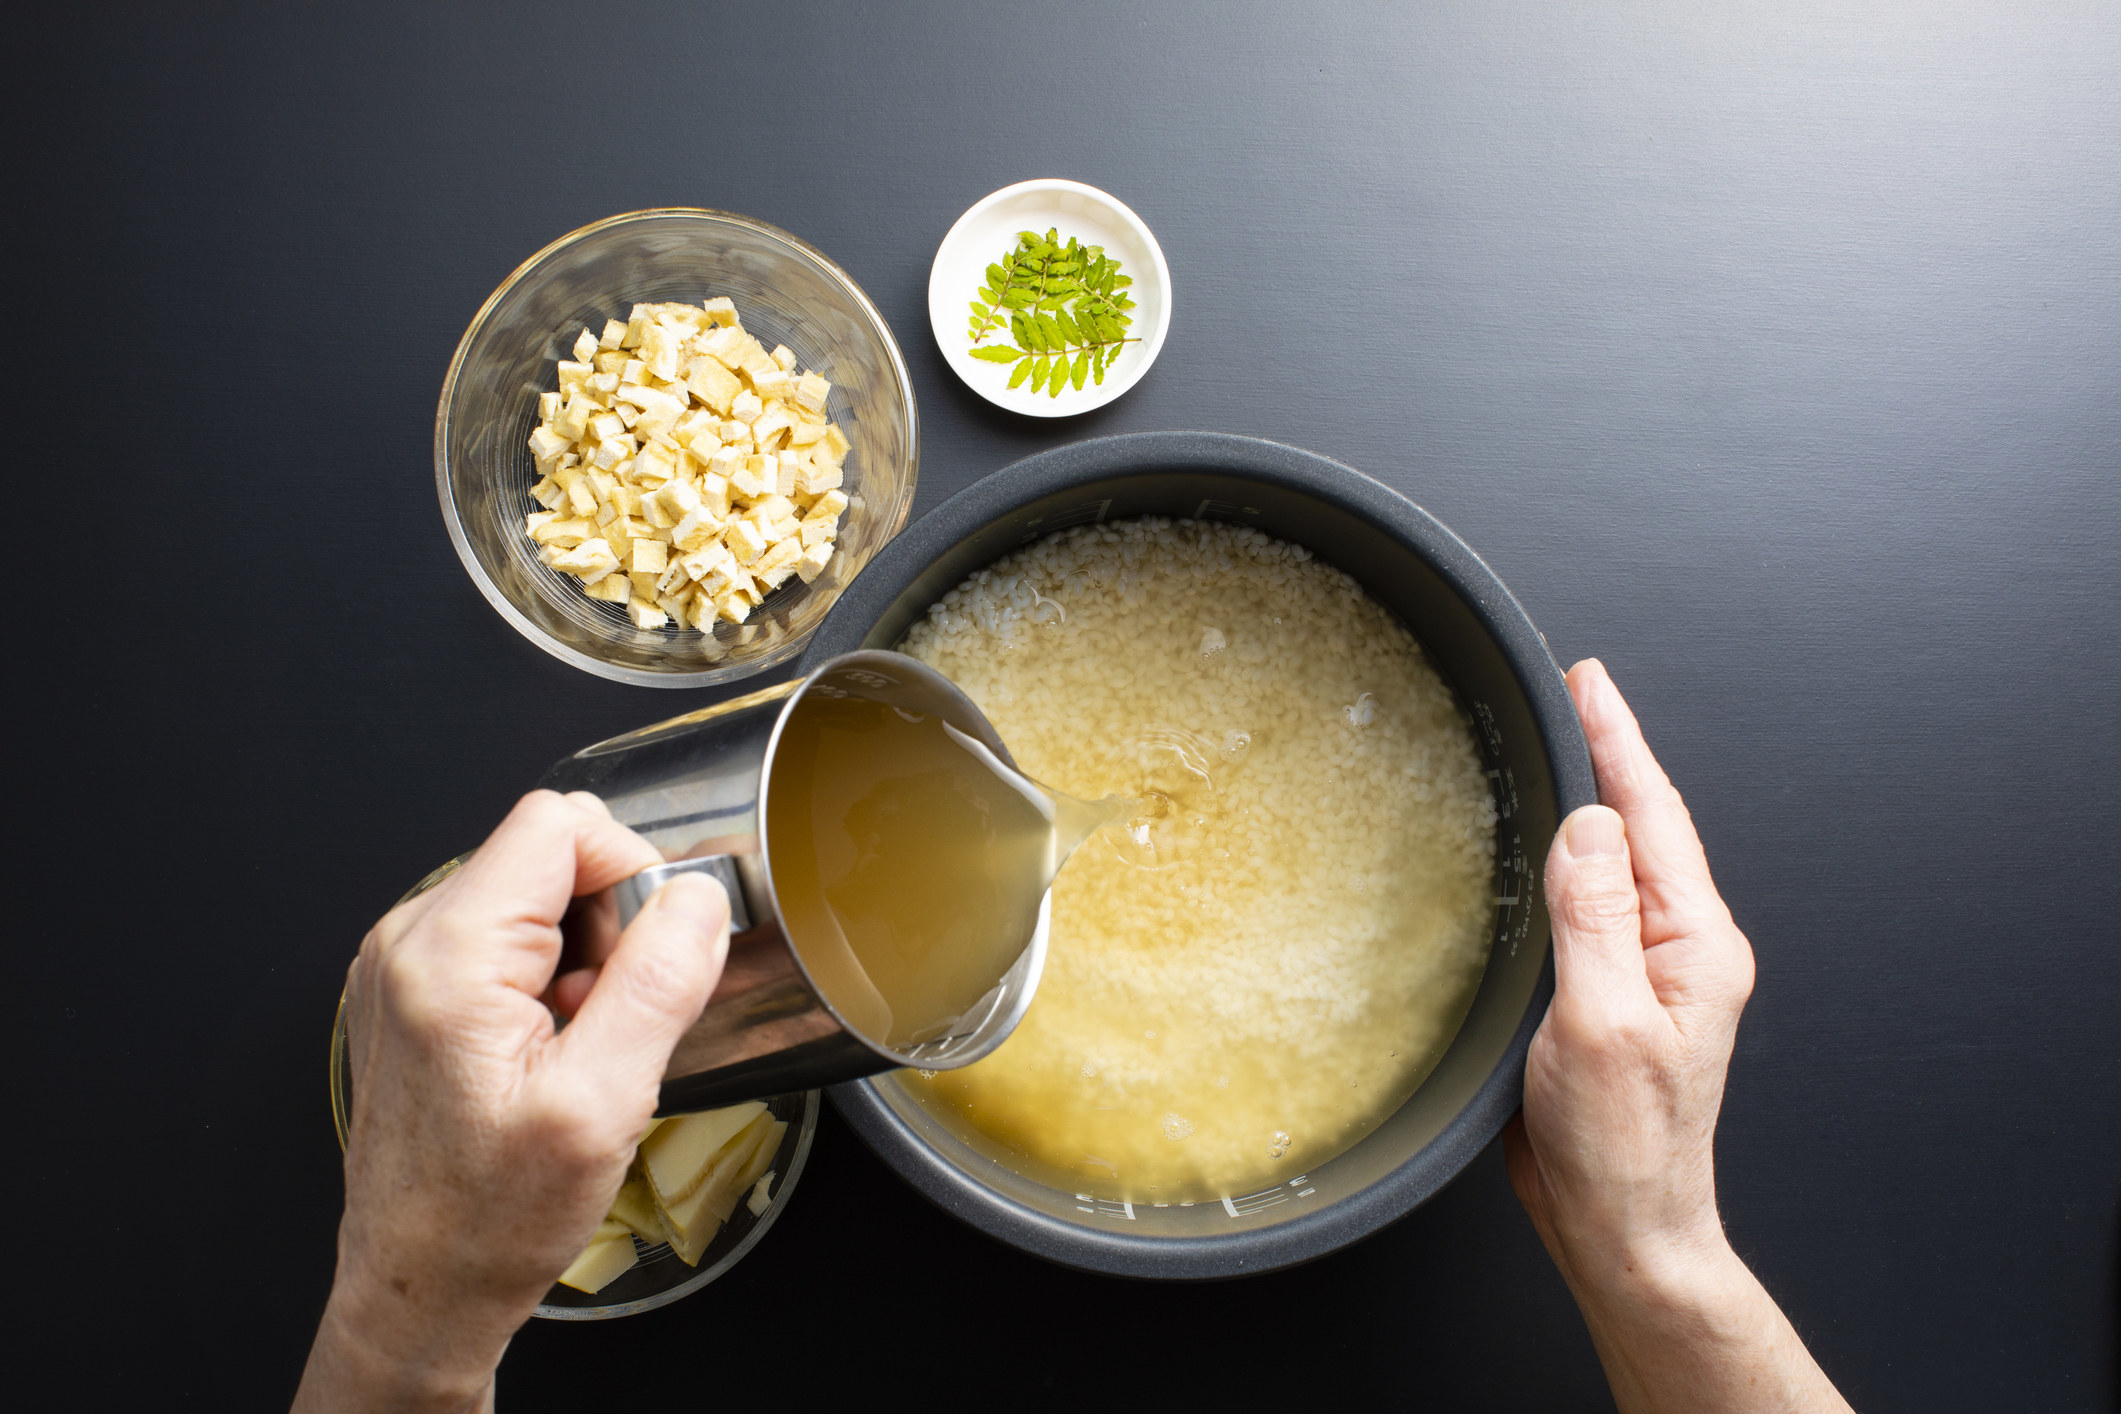 Pouring chicken broth into rice.